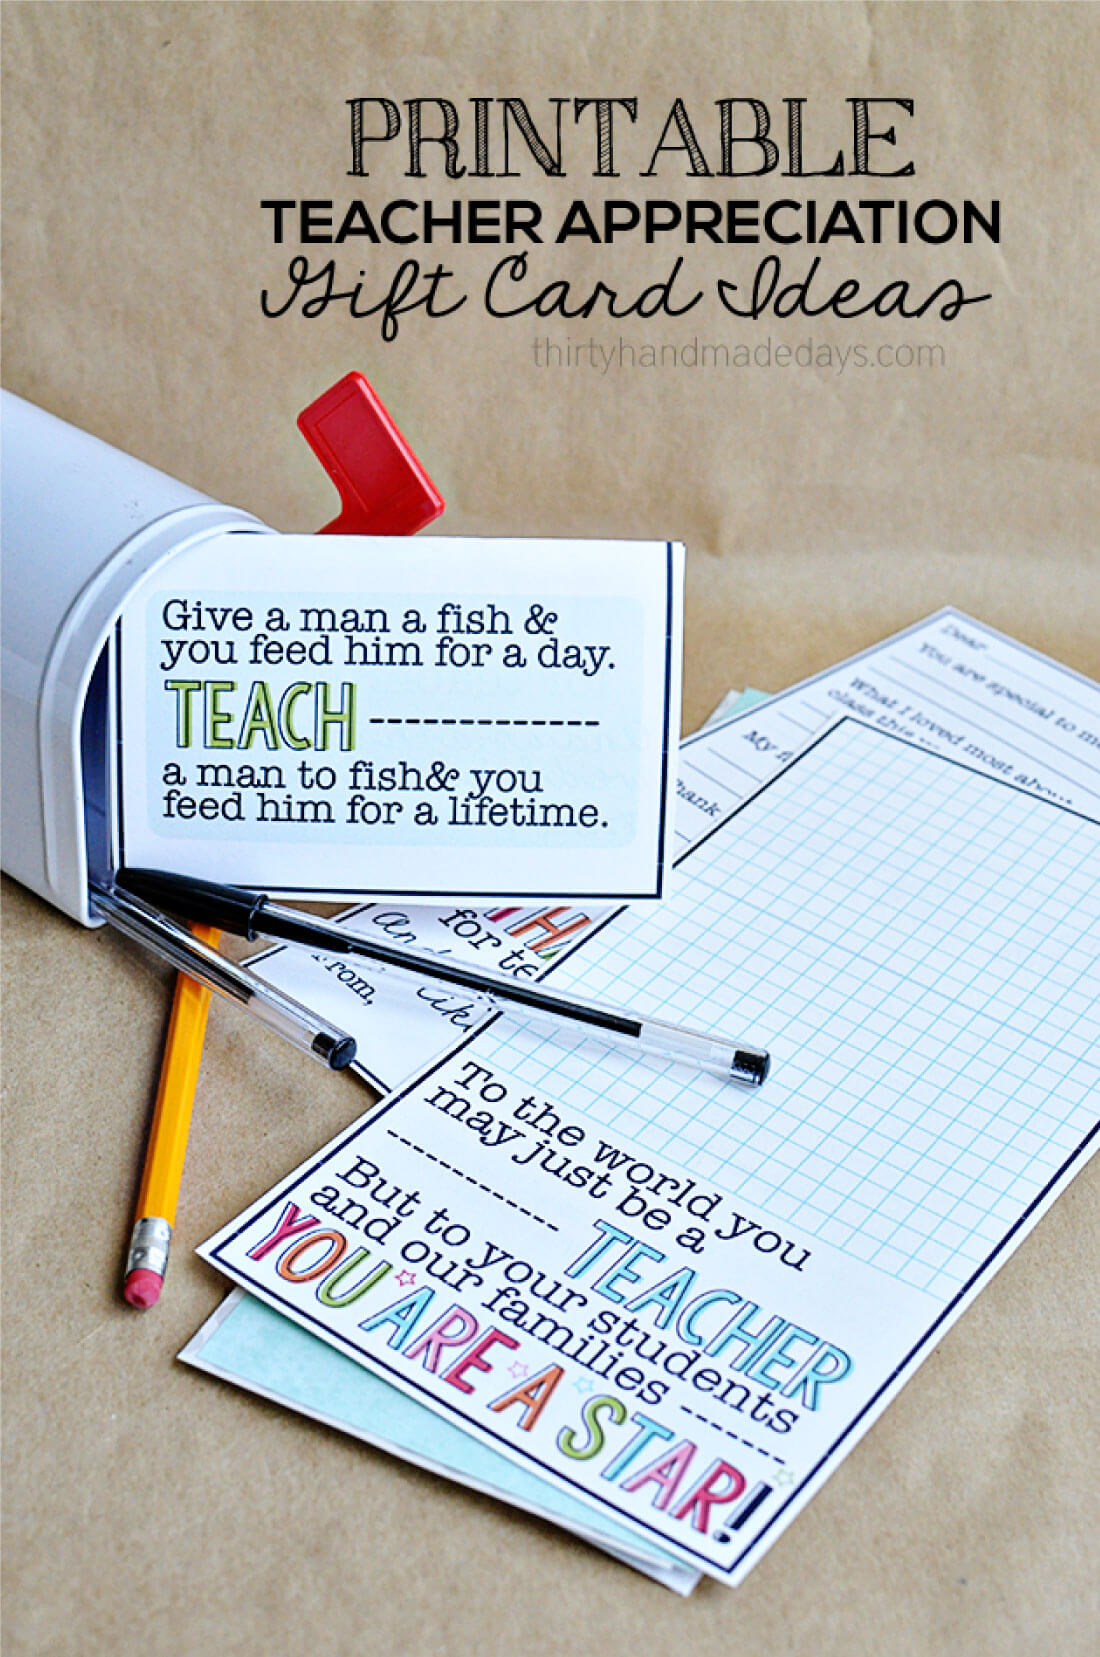 This is a photo of Resource Printable Cards for Teachers